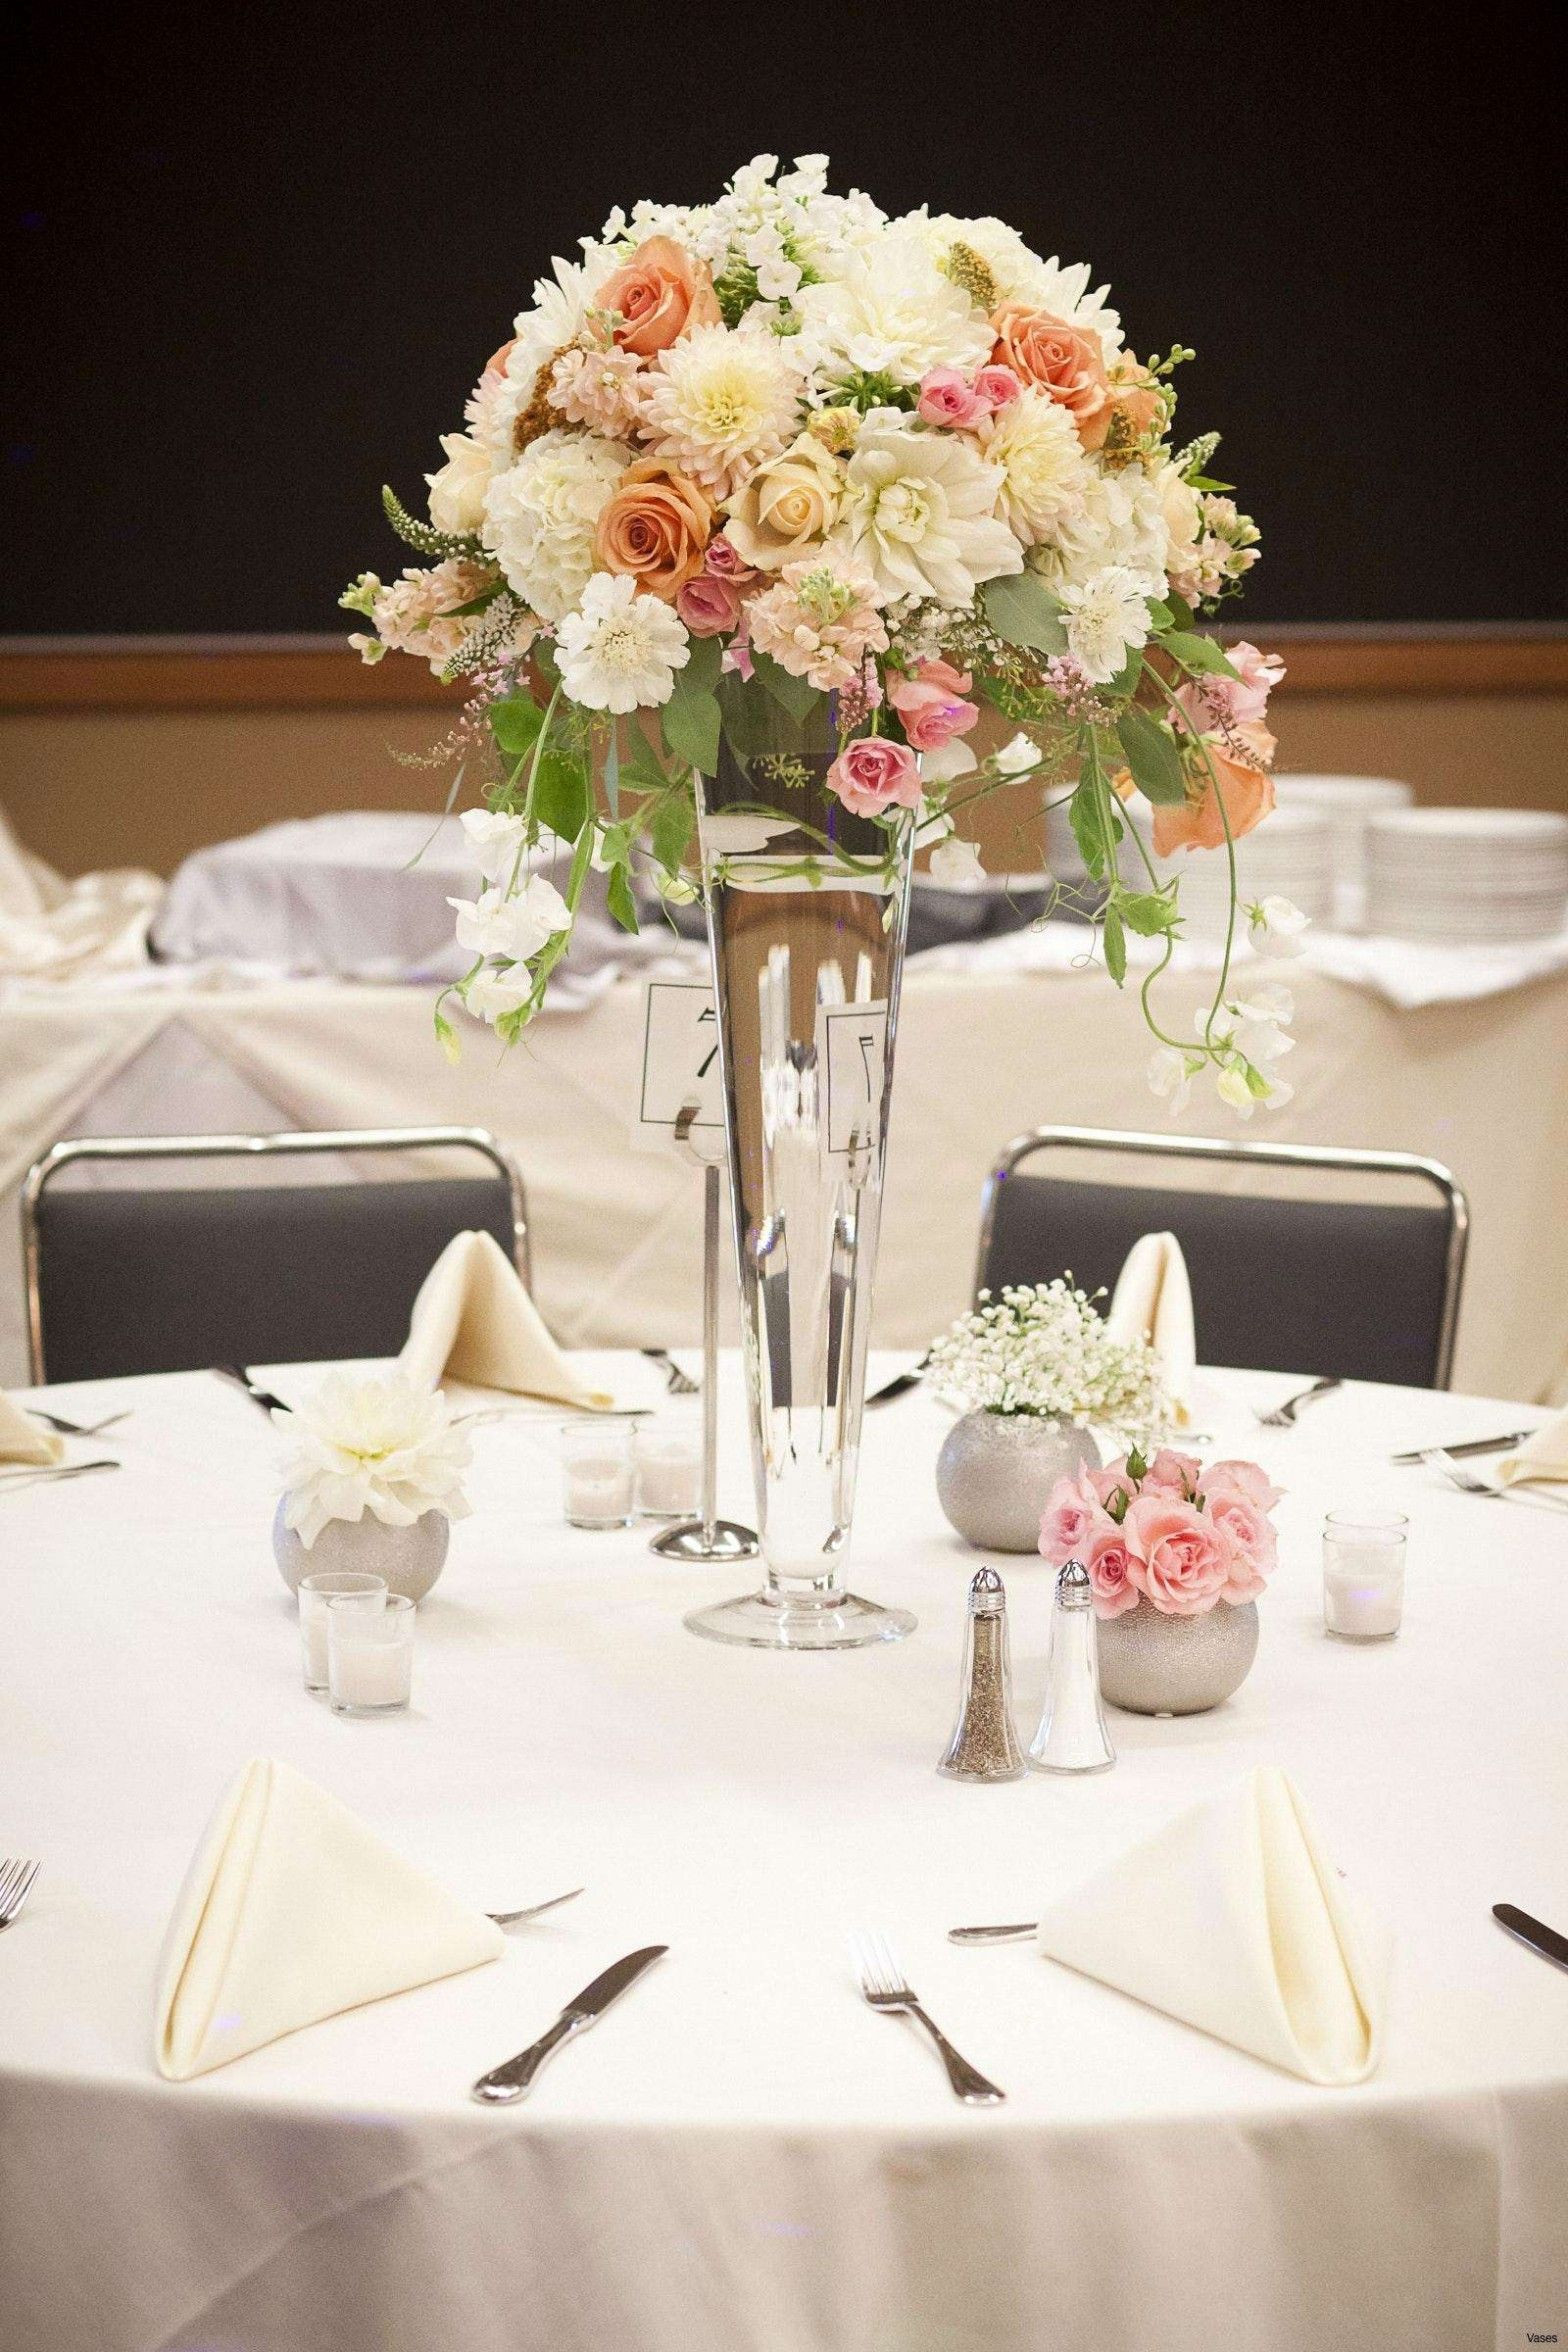 dollar tree vases centerpieces of 47 vase centerpiece ideas the weekly world pertaining to mirrored square vase 3h vases mirror table decorationi 0d weddings